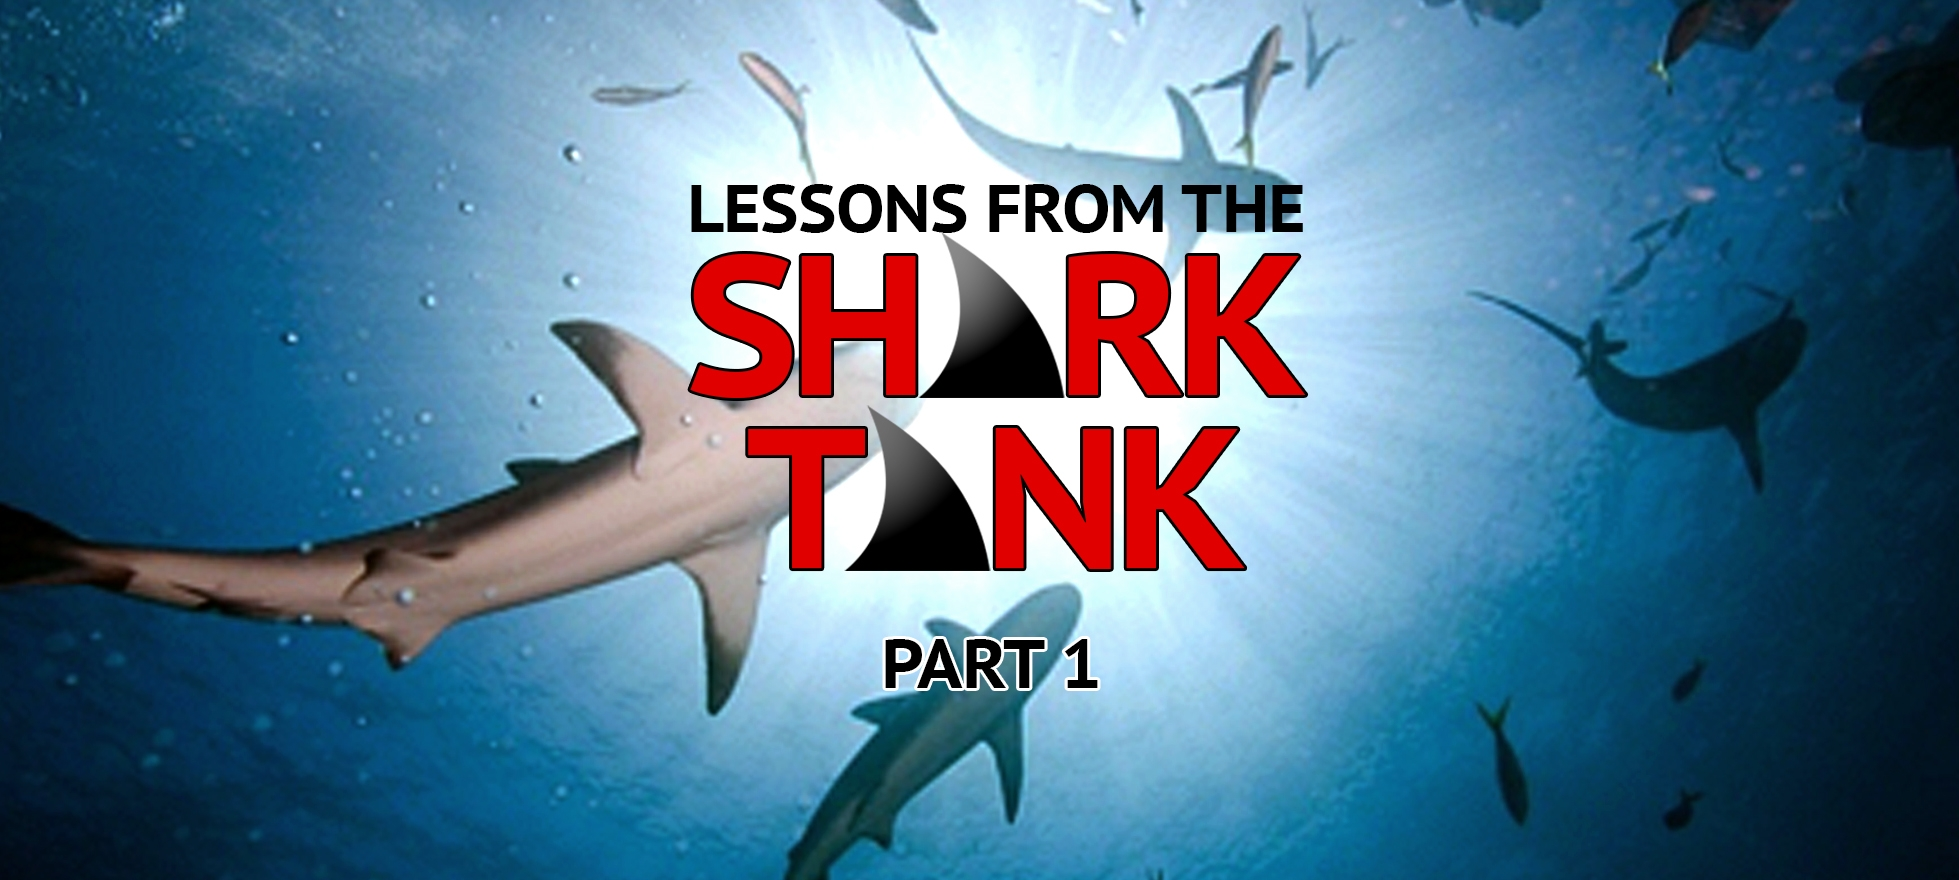 Lessons From the Shark Tank